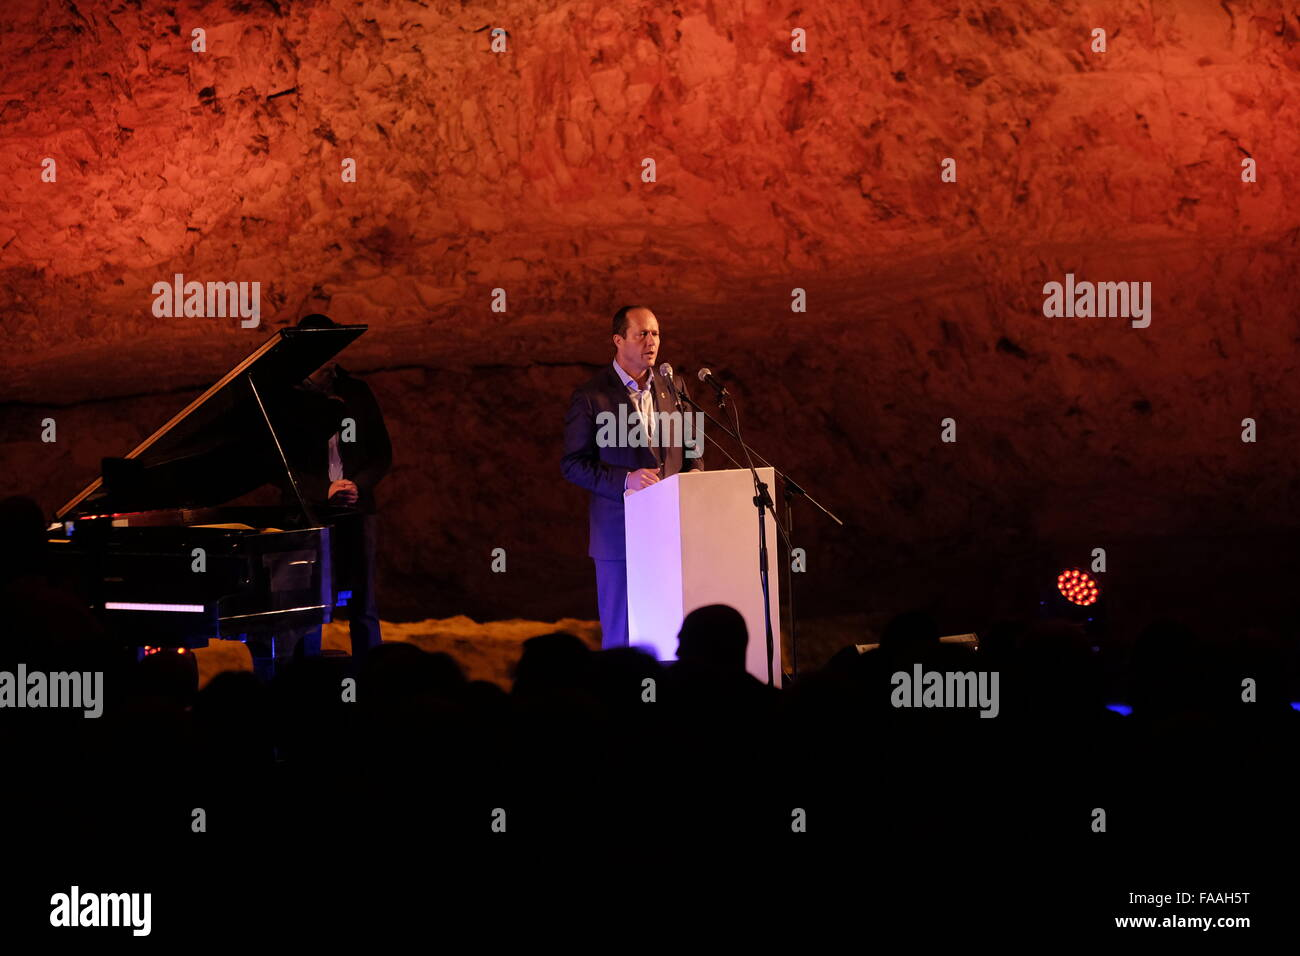 Nir Barkat mayor of Jerusalem addressing to the audience before a musical performance  inside Zedekiah's Cave - Stock Image